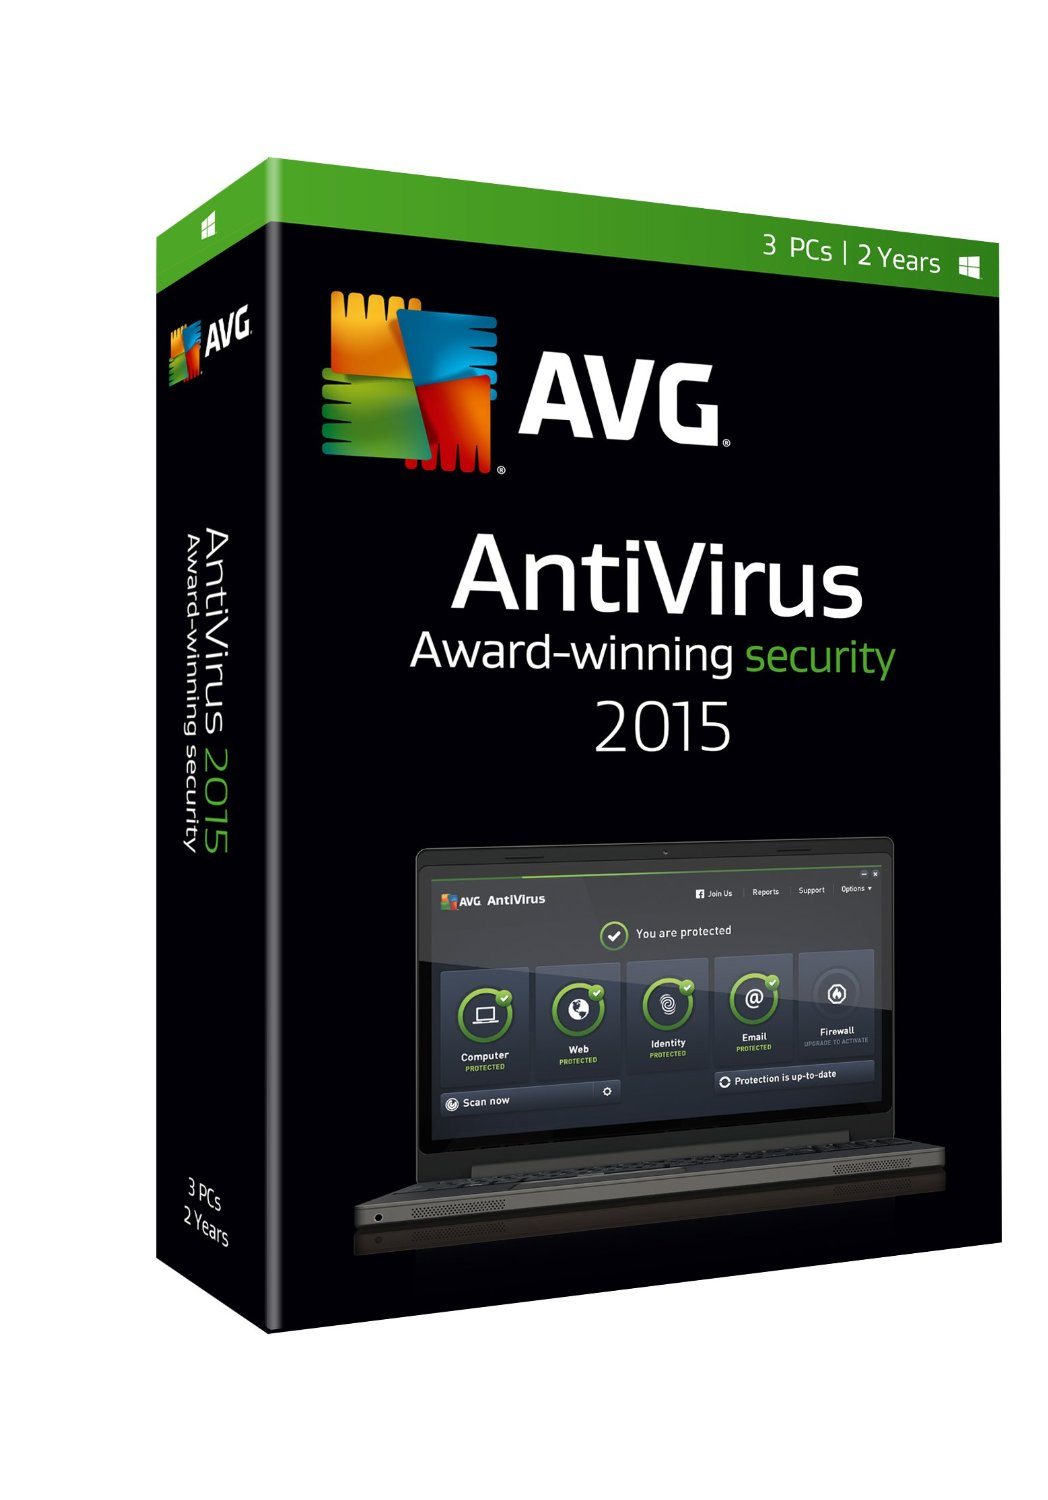 AVG Free is completely free